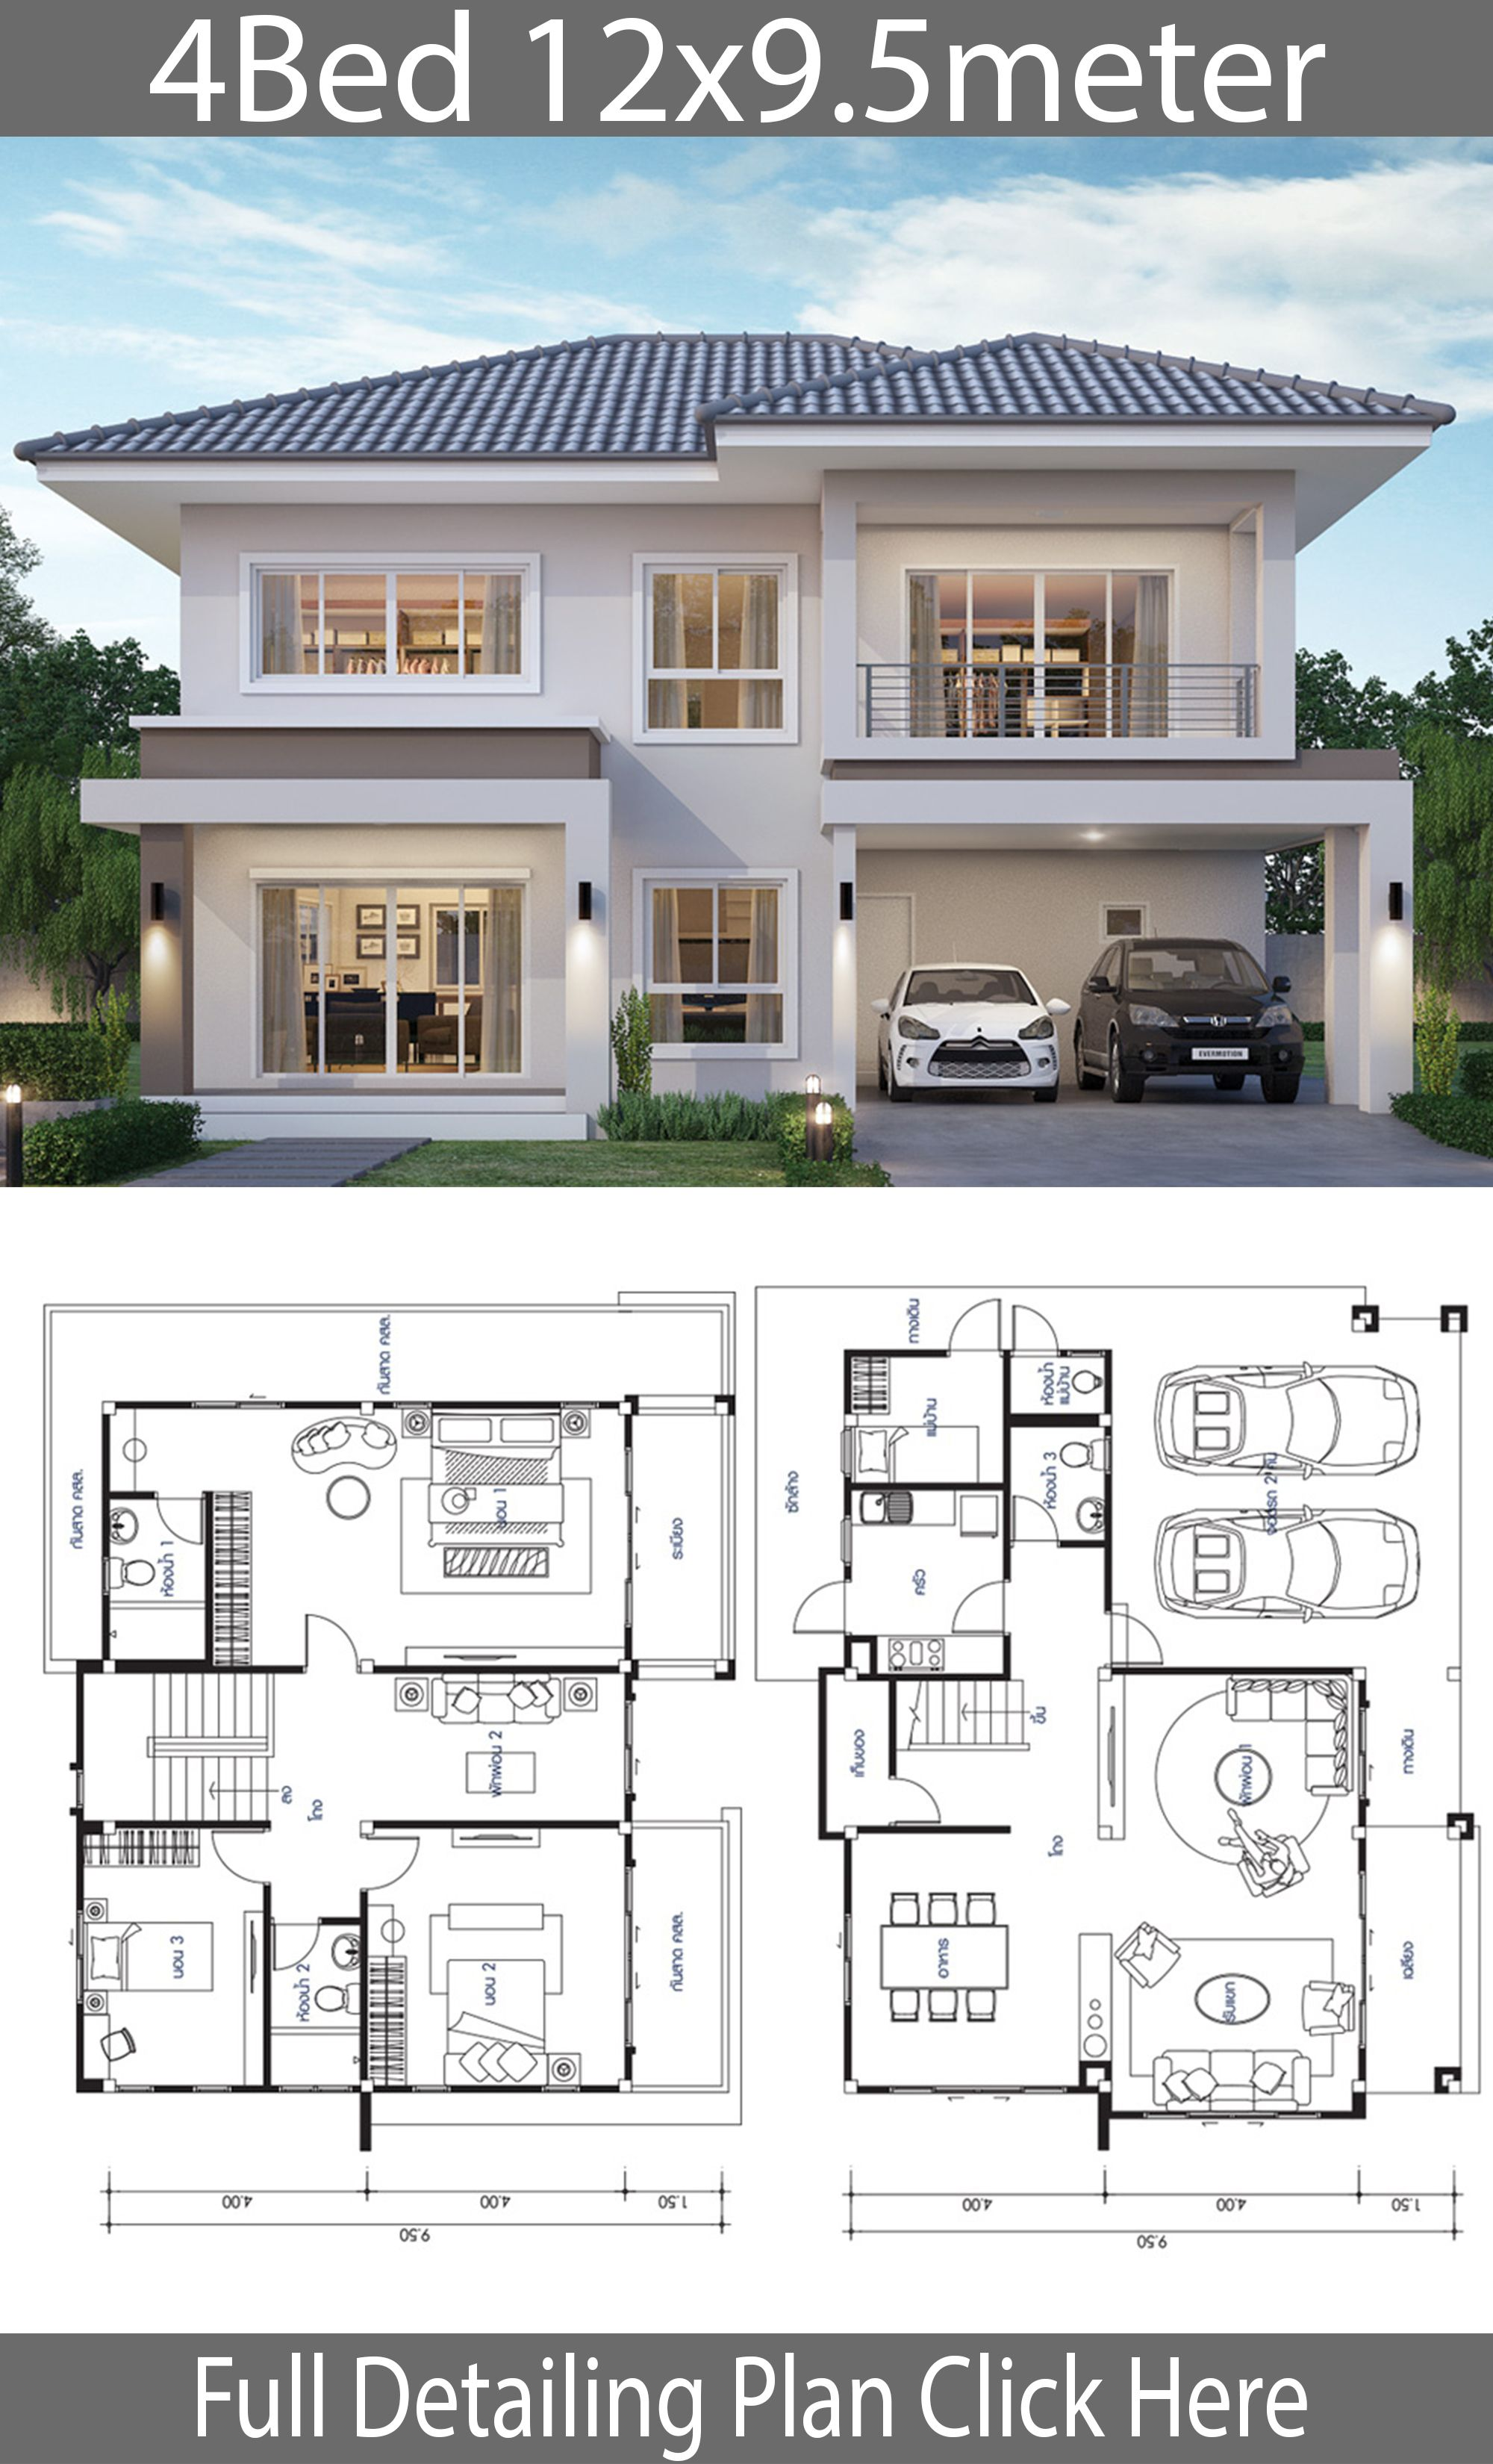 House Design Plan 12x9 5m With 4 Bedrooms House Idea In 2020 2 Storey House Design Architectural House Plans 4 Bedroom House Designs